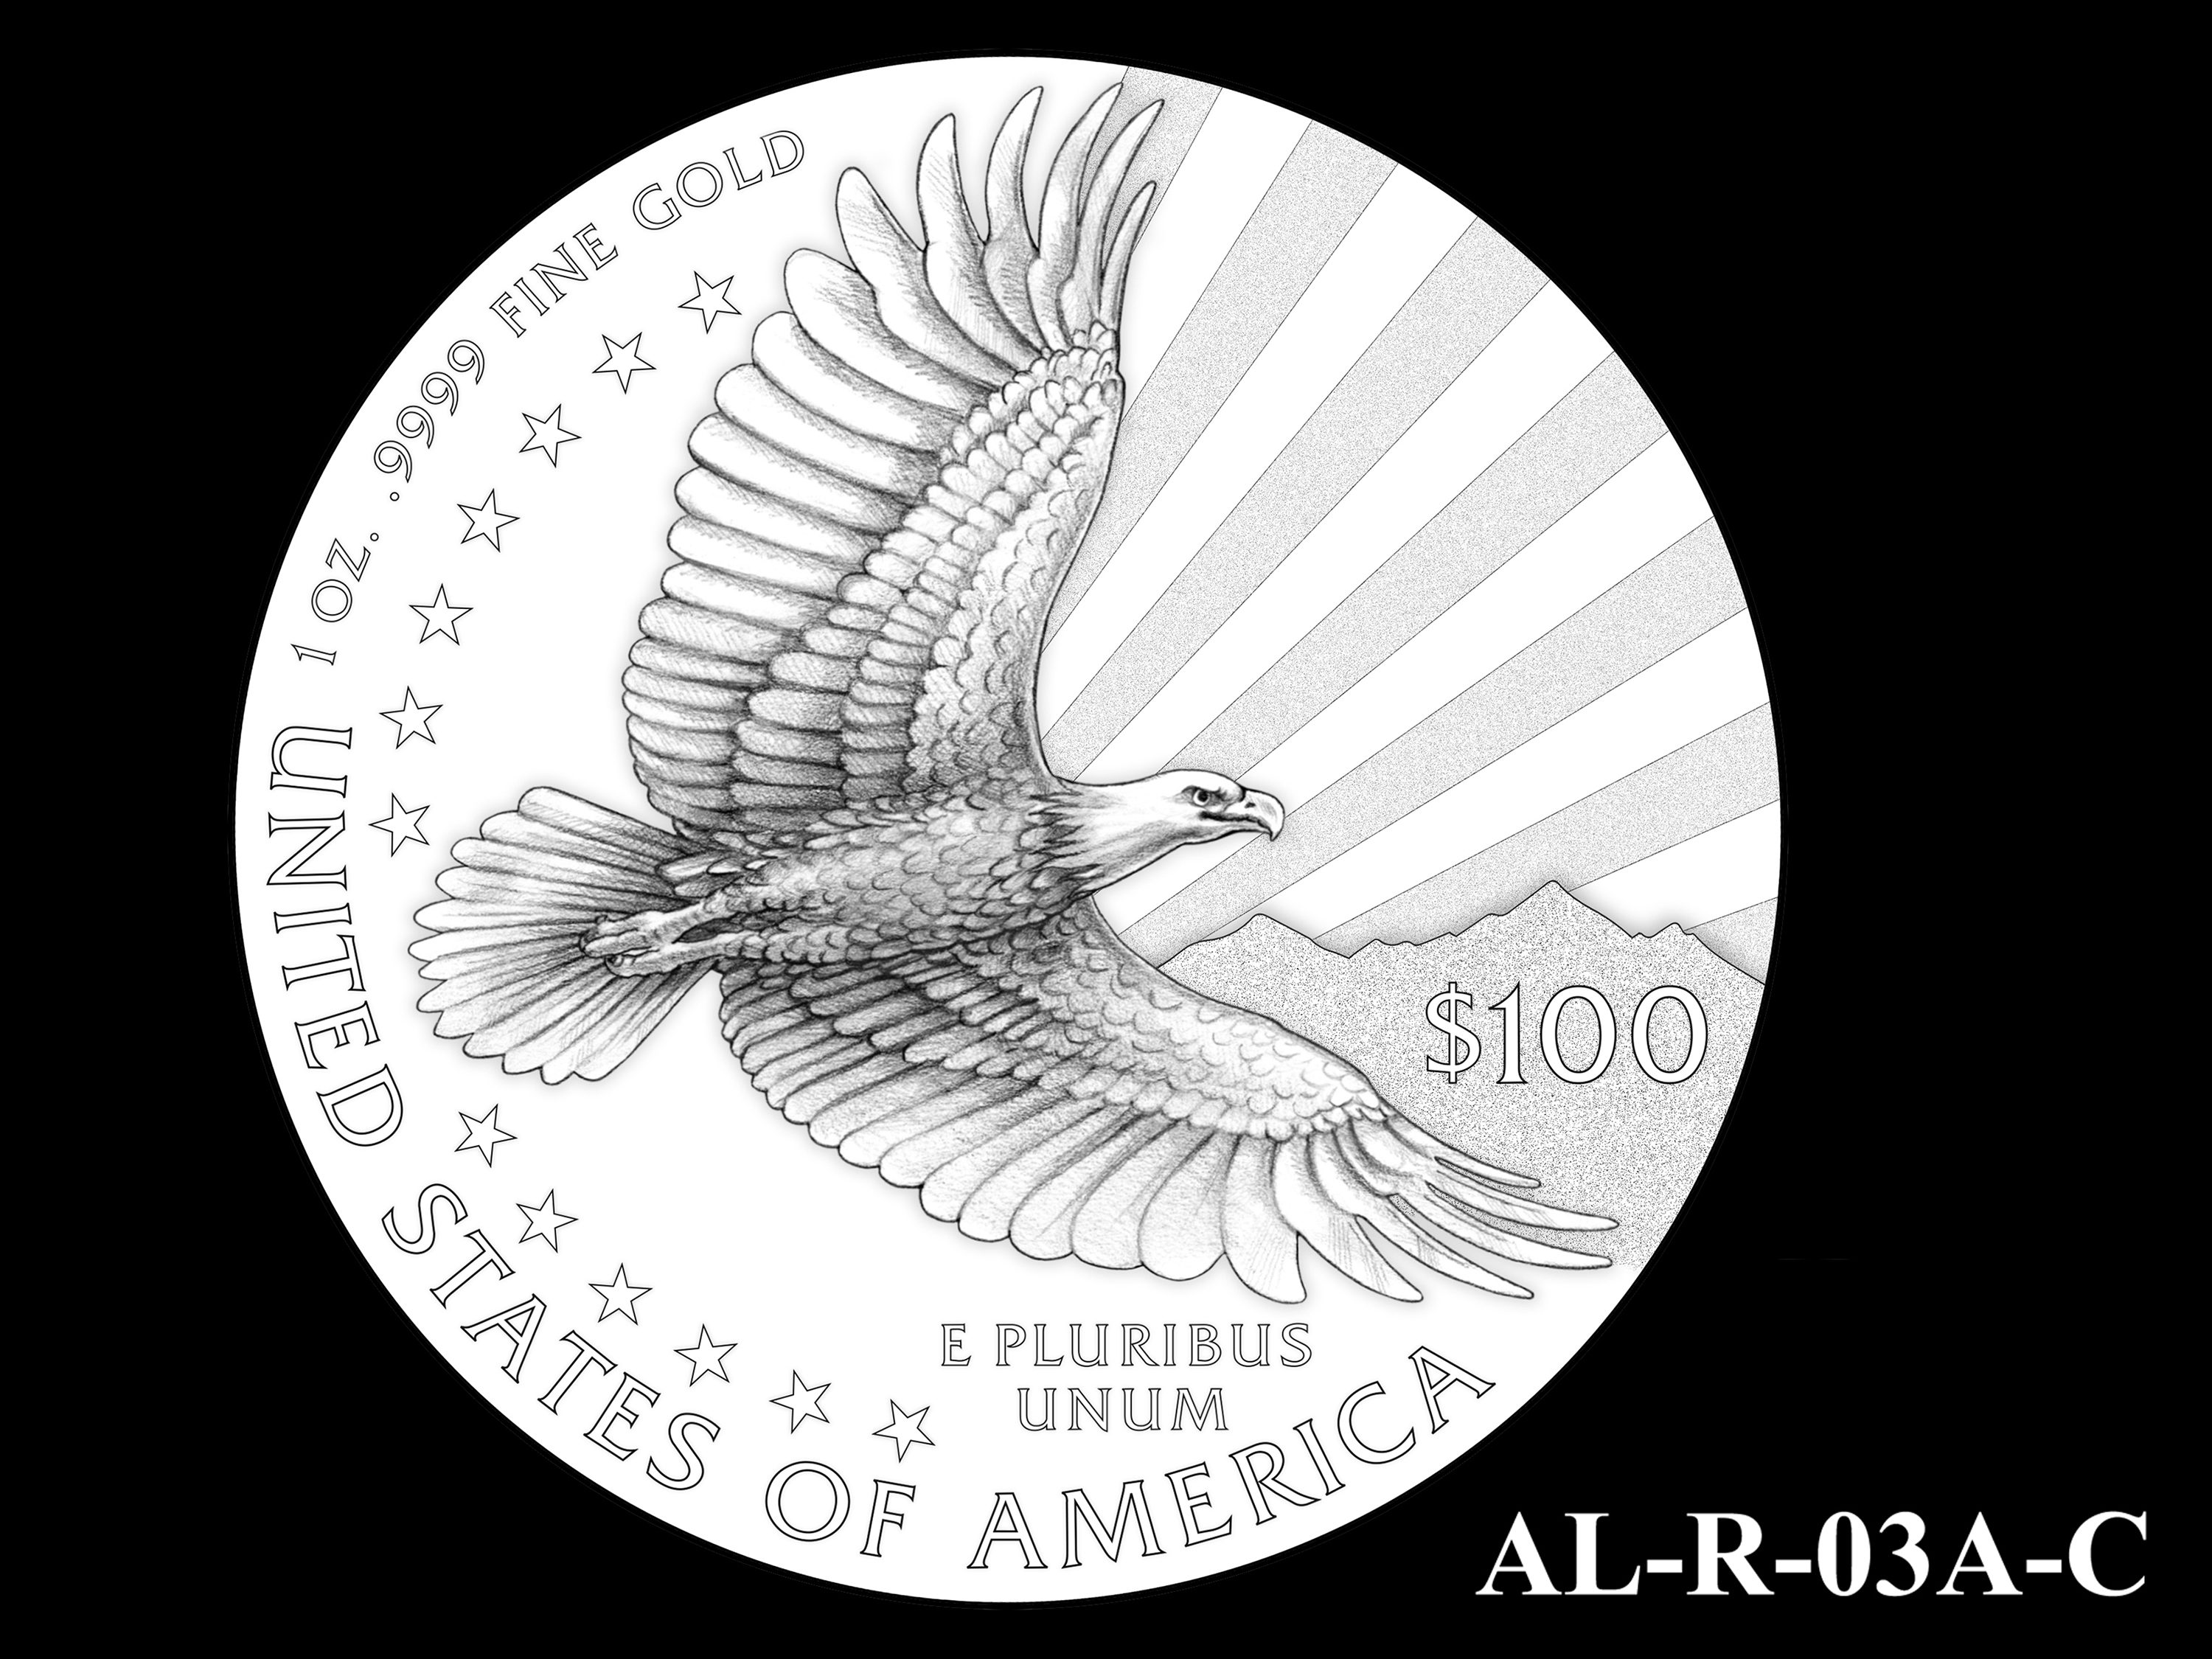 AL-R-03A-C -- 2021 American Liberty Gold Coin and Silver Medal Program - Reverse